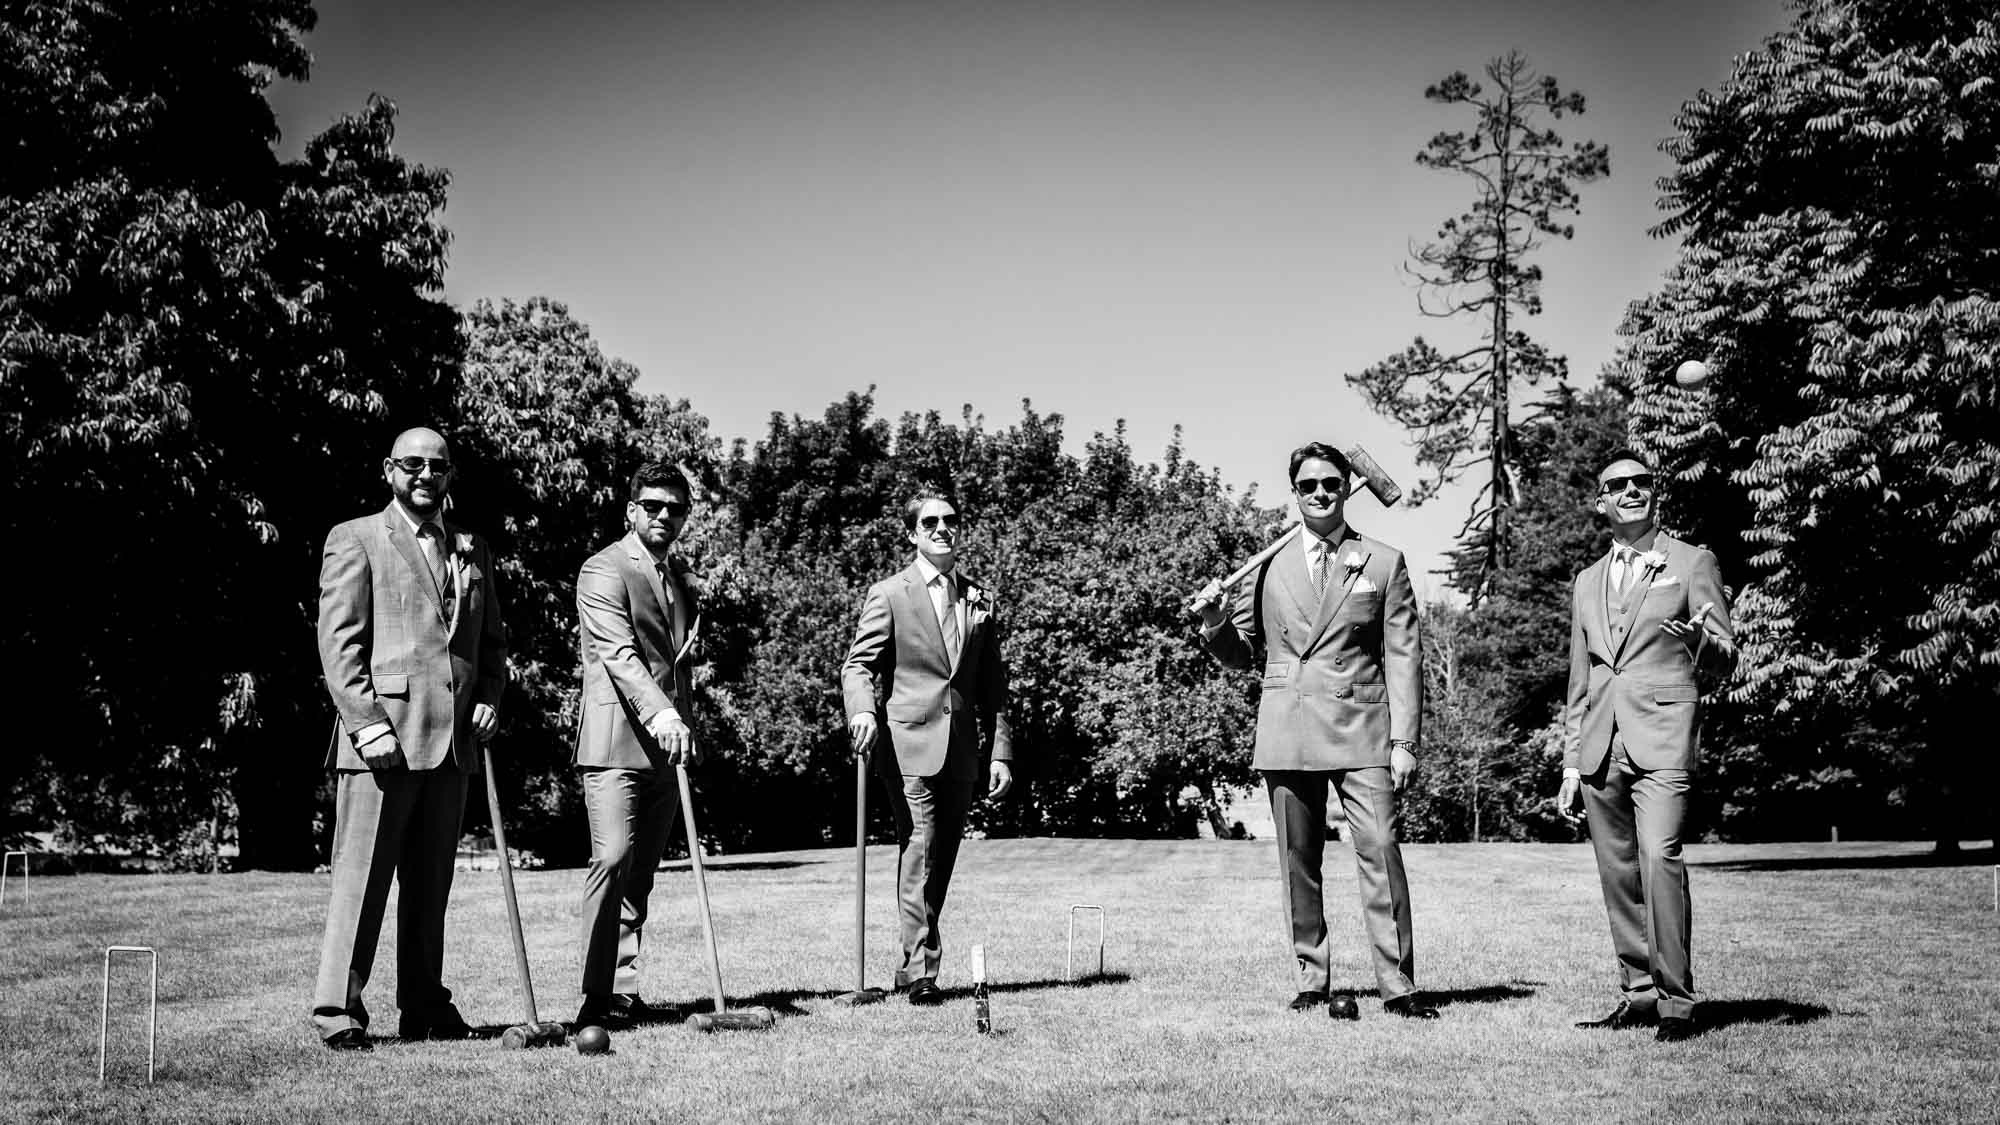 The boys playing croquet at St Audries Park